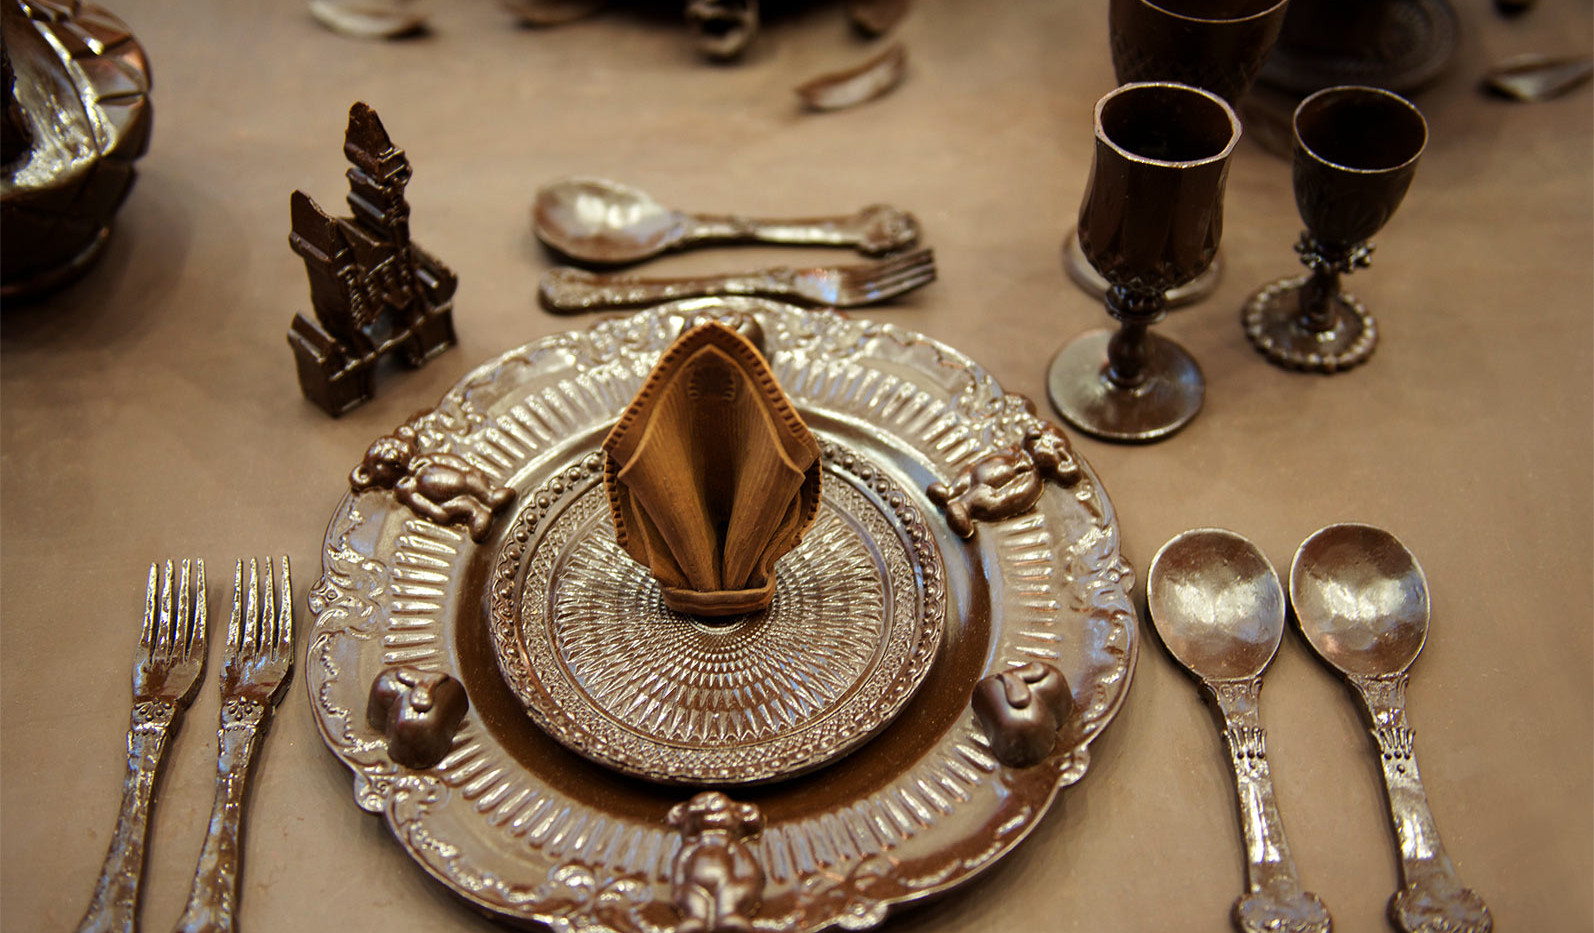 Dinner set for emperor's child